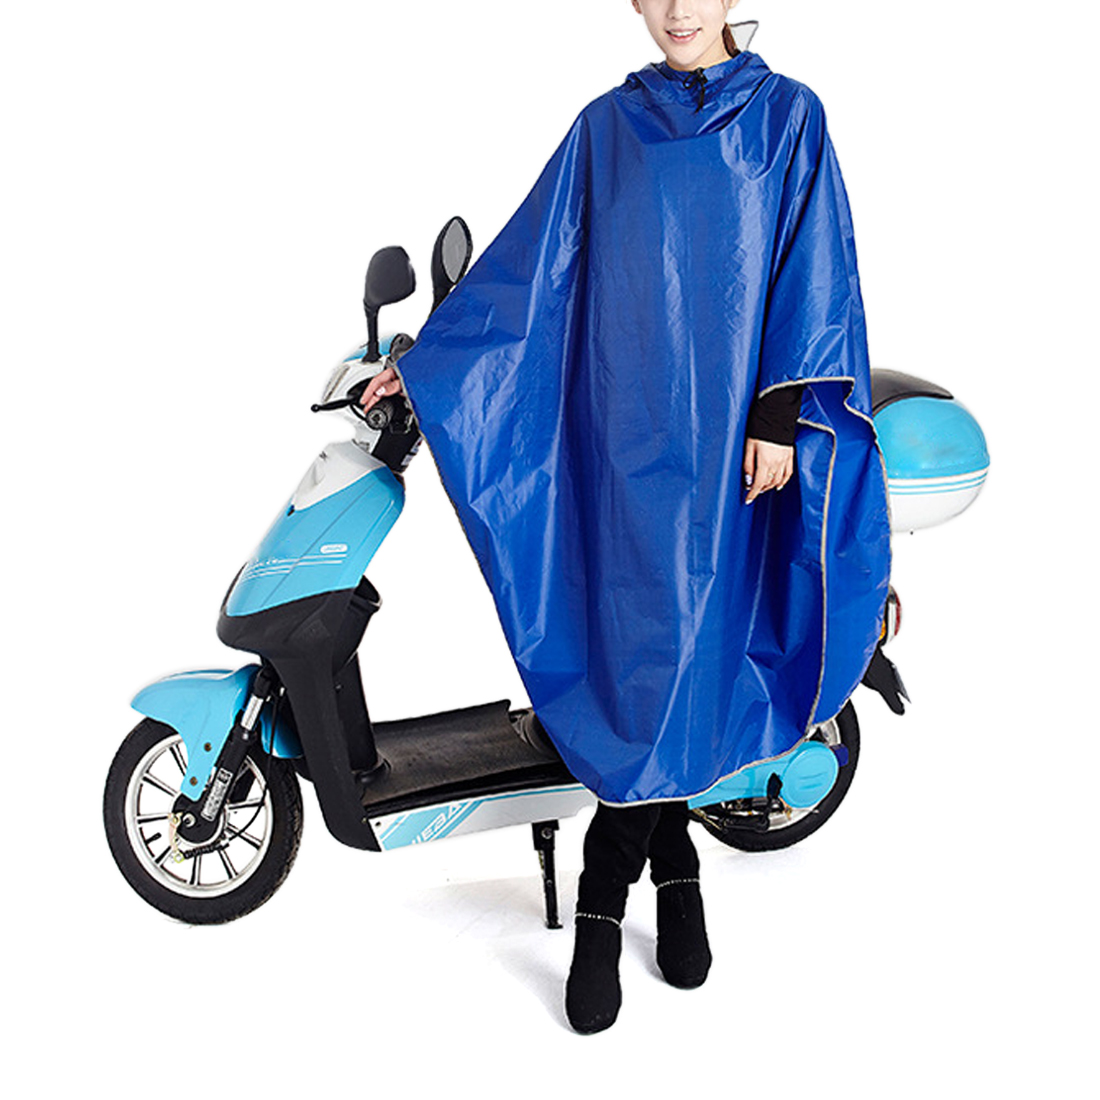 Blue Adult Poncho Cycling Raincoat Bicycle Hooded Waterproof Rain Coat Cover